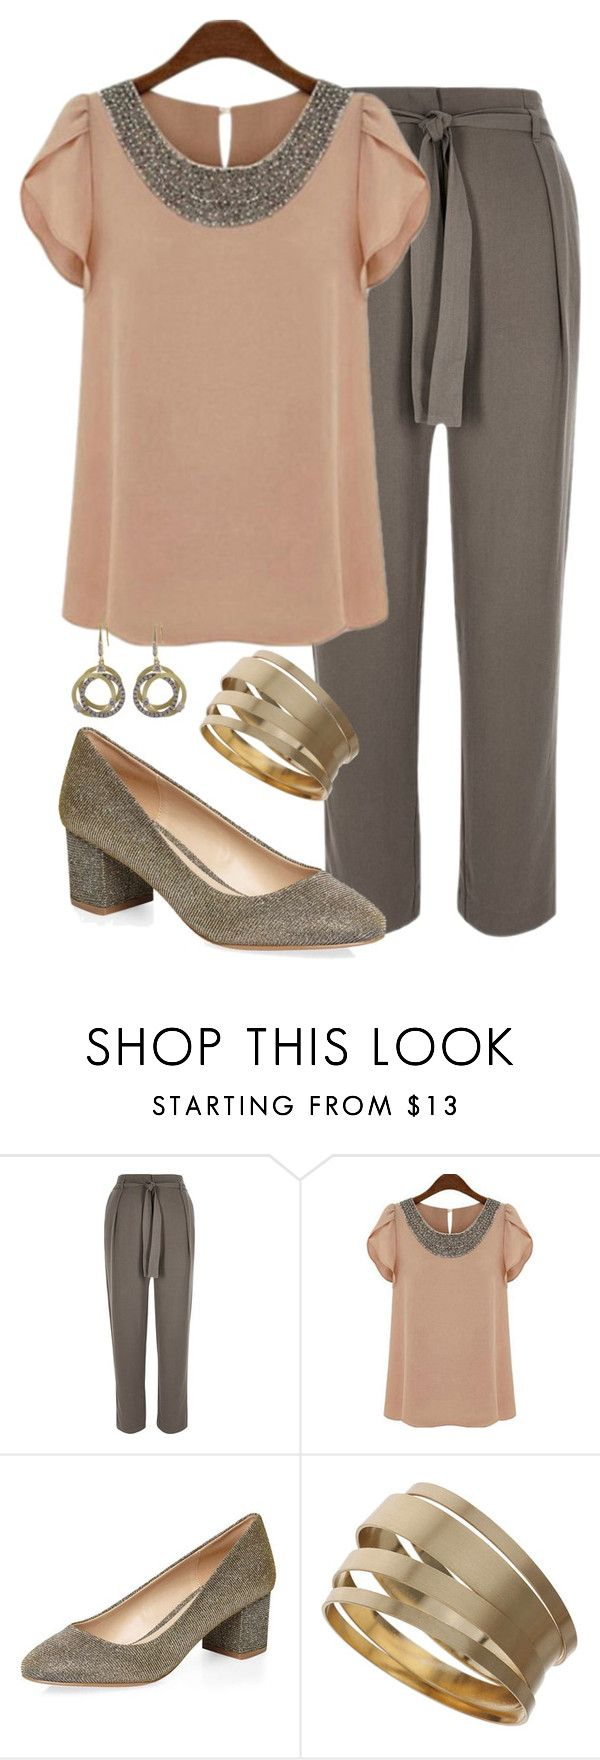 Teacher Outfits on a Teacher's Budget 202 by allij28 on Polyvore featuring River Island, Dorothy Perkins, Topshop and Luxiro